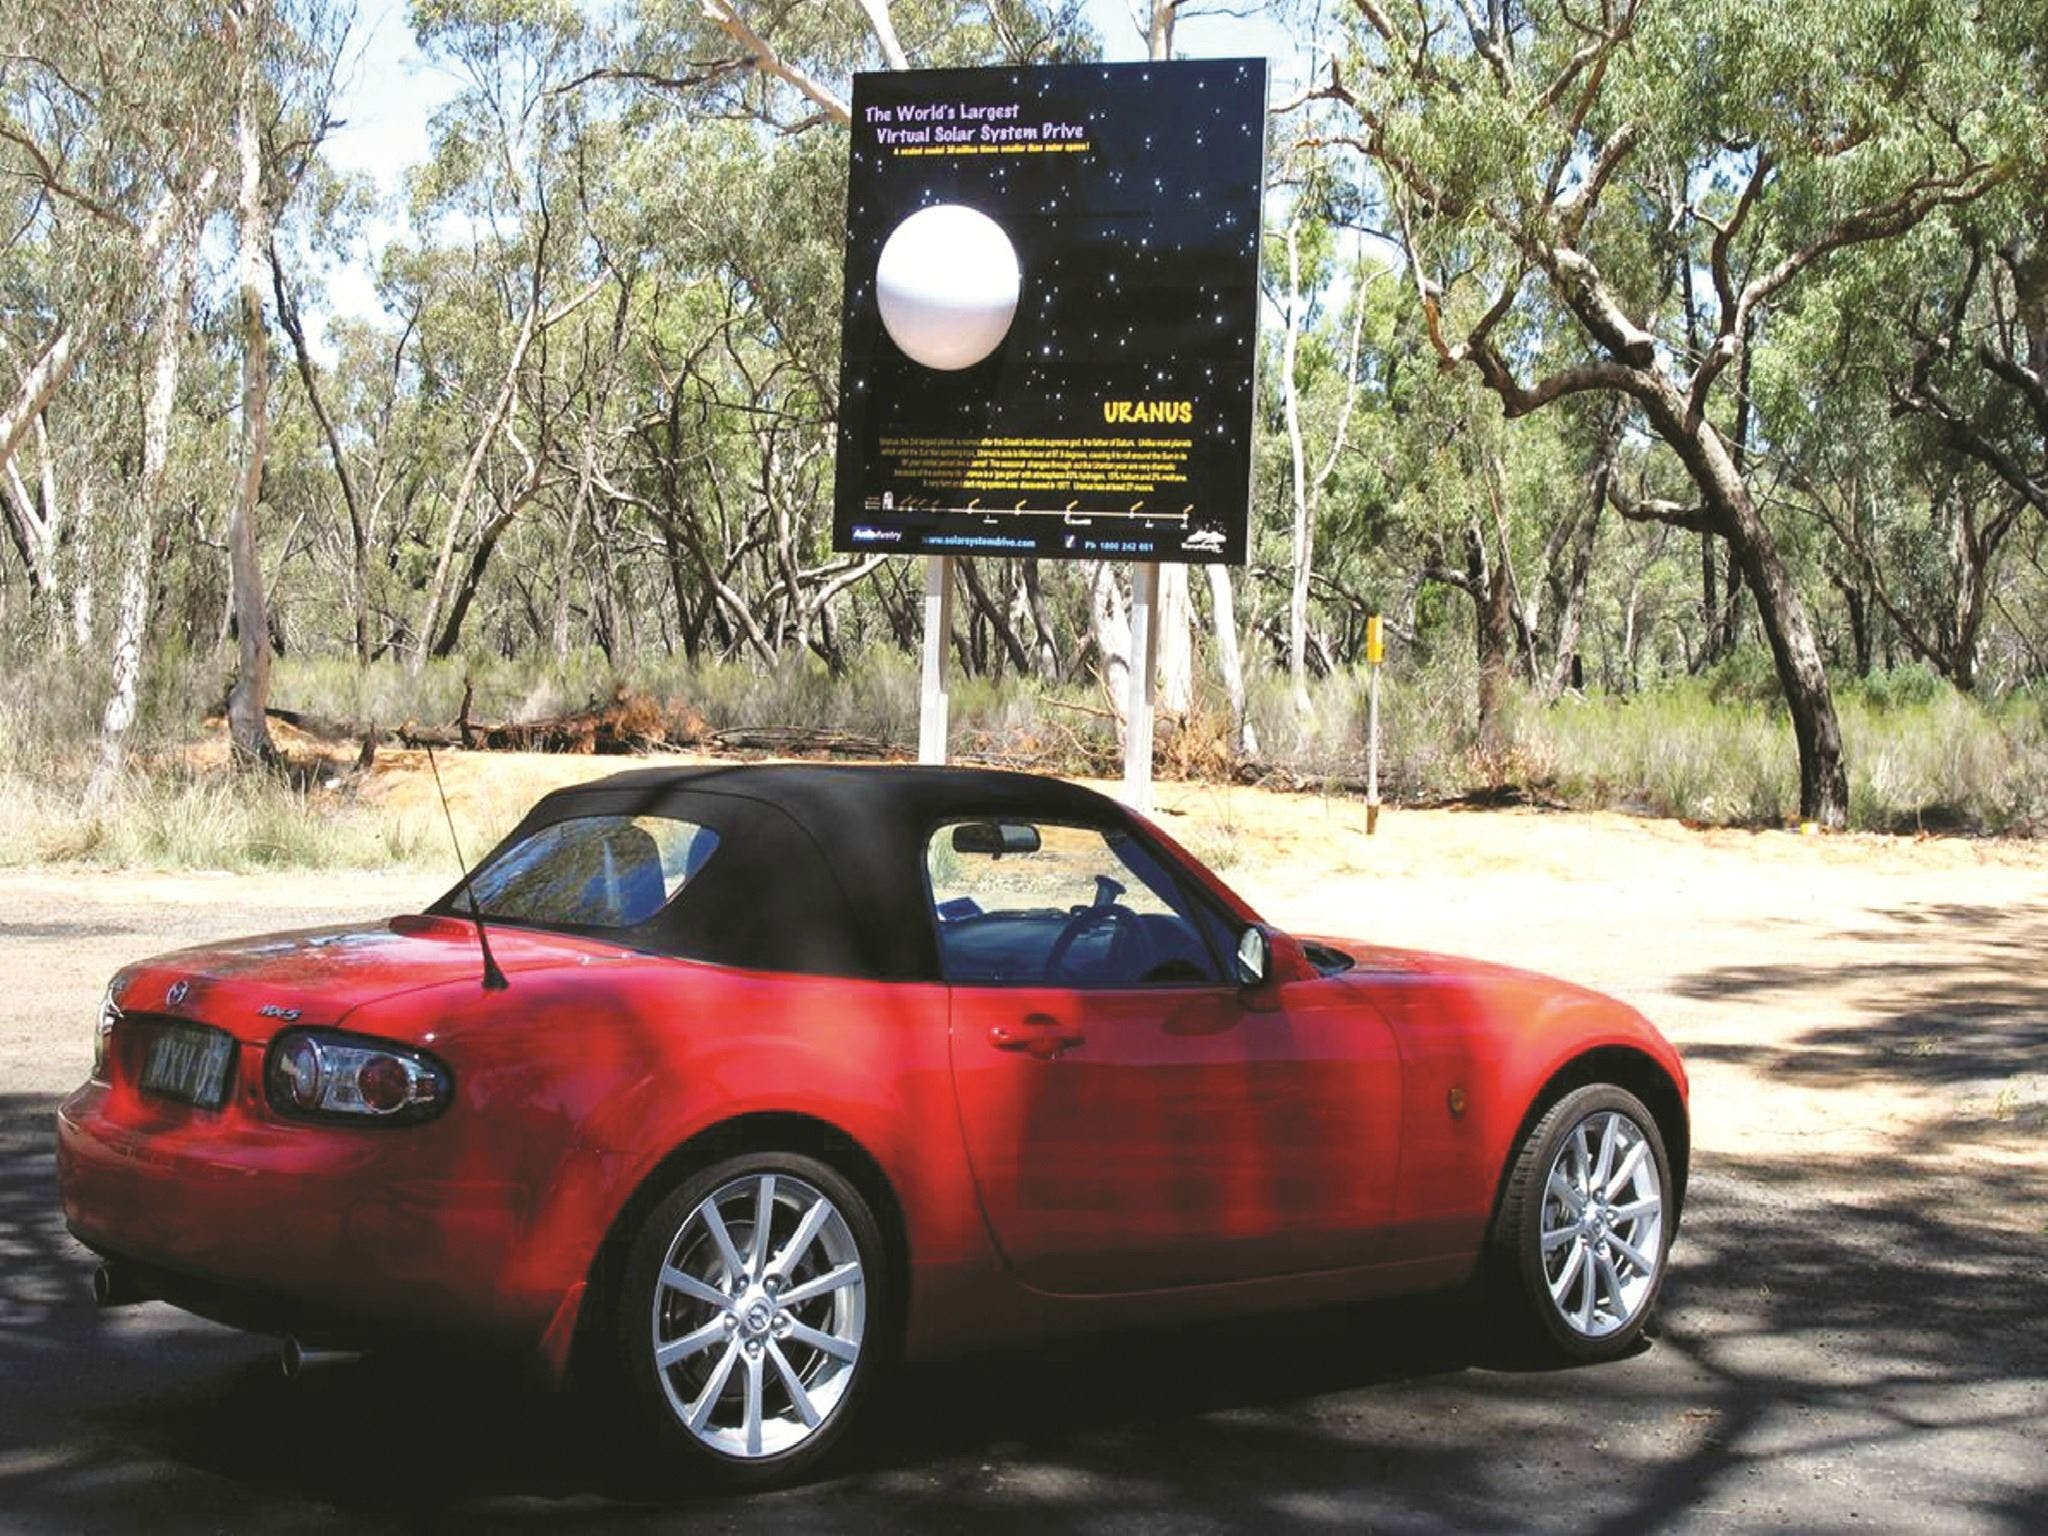 Worlds Largest Virtual Solar System Drive - Sydney Tourism